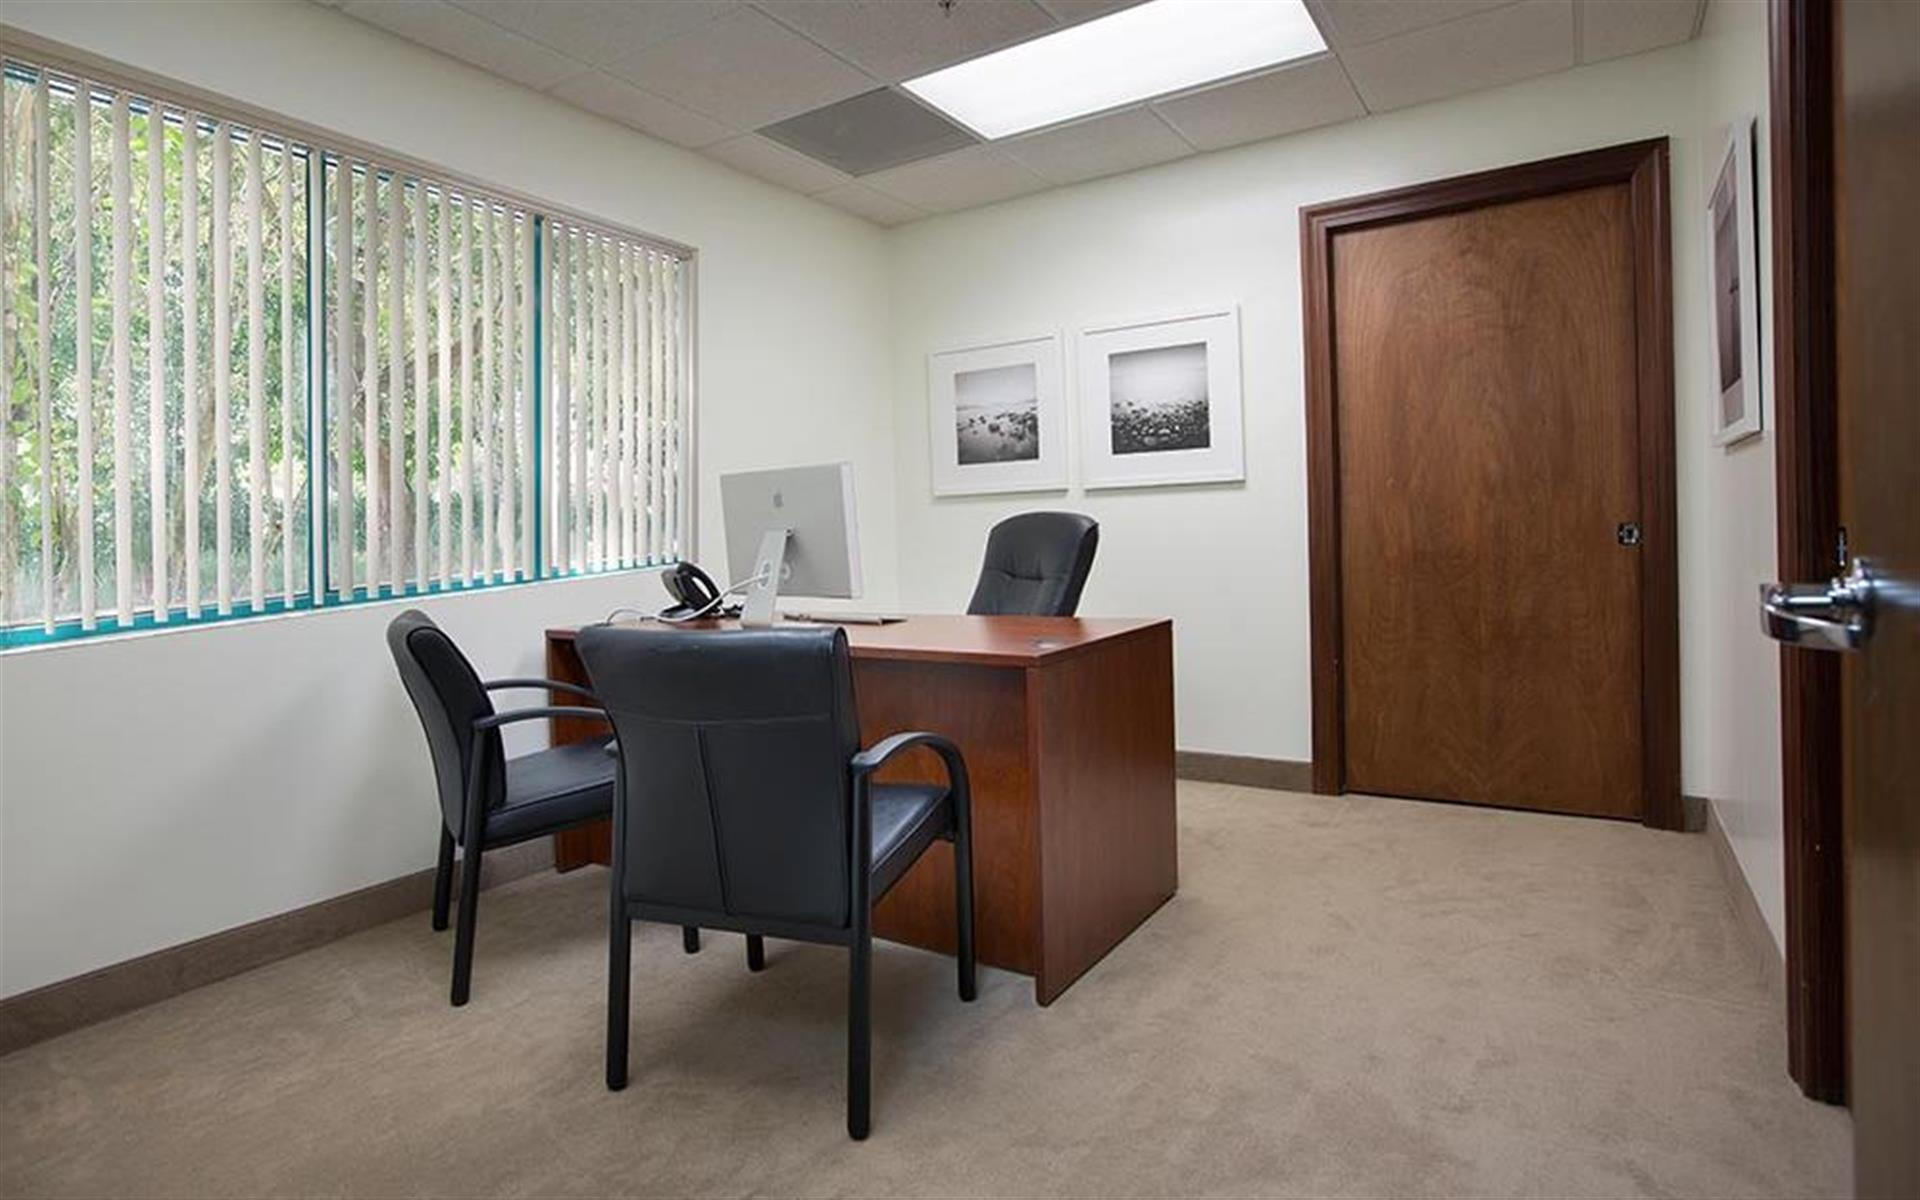 Lakeside Executive Suites - Window Office for 2 - 1st Month Free!